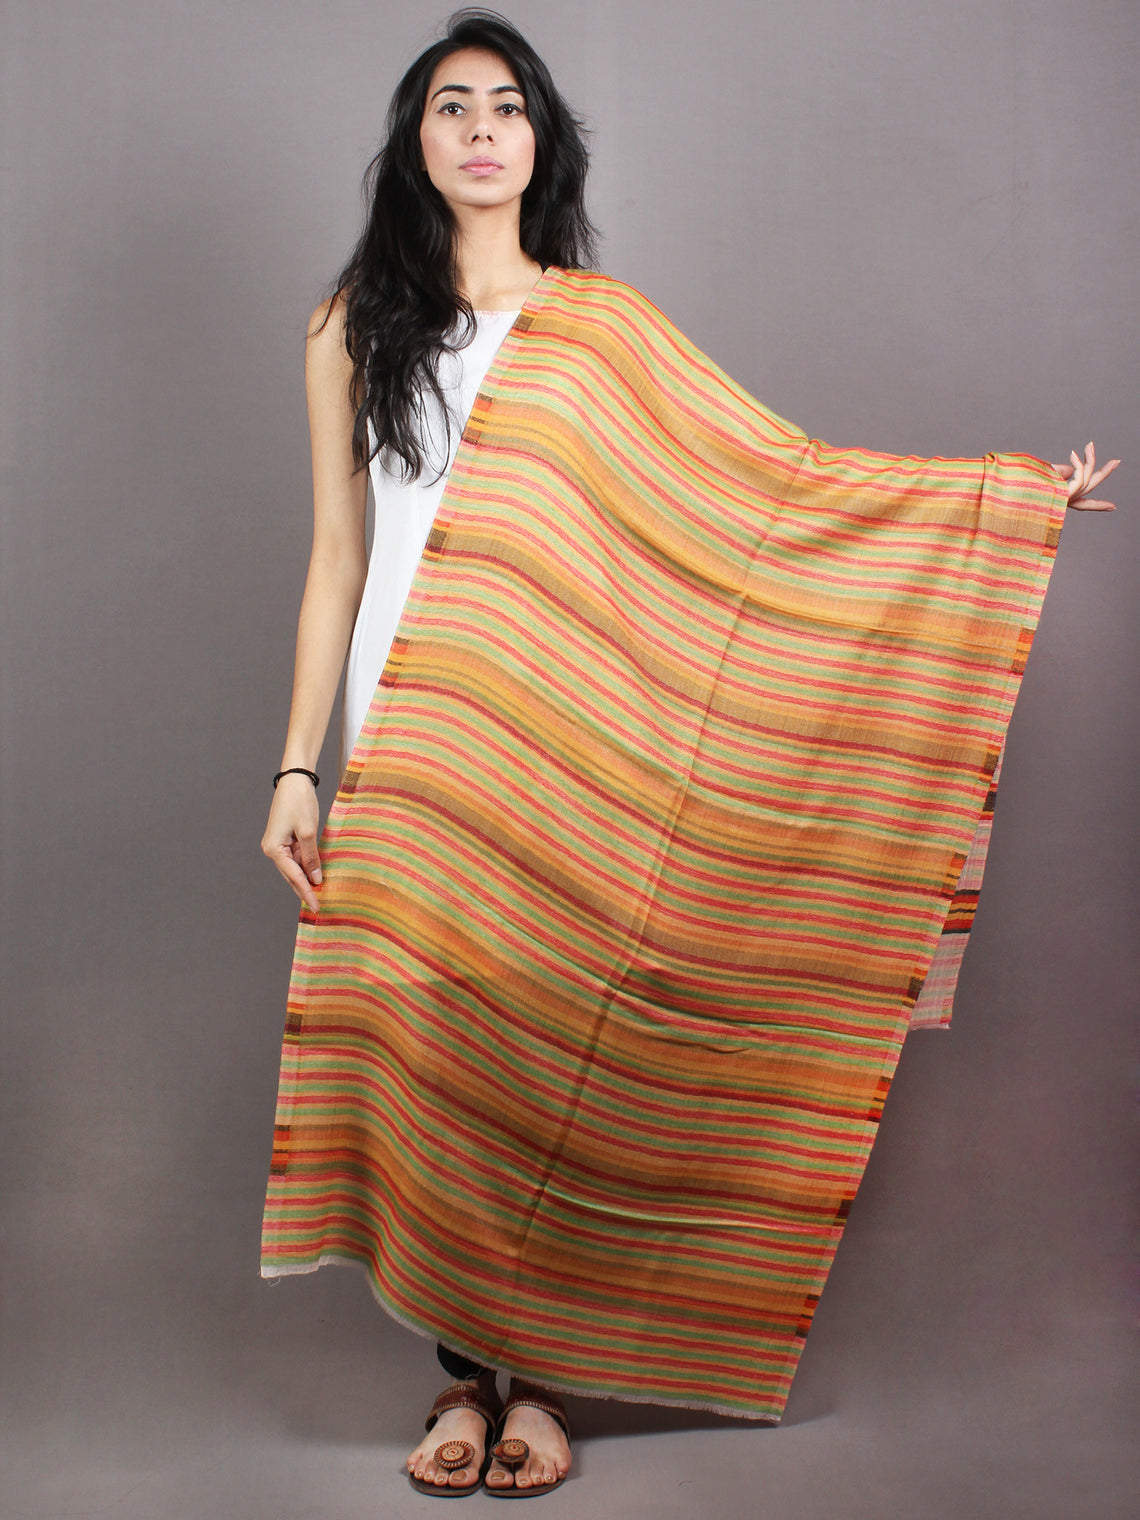 Yellow White Red Pure Wool Reversible Lining Weaved Cashmere Stole from Kashmir - S6317118